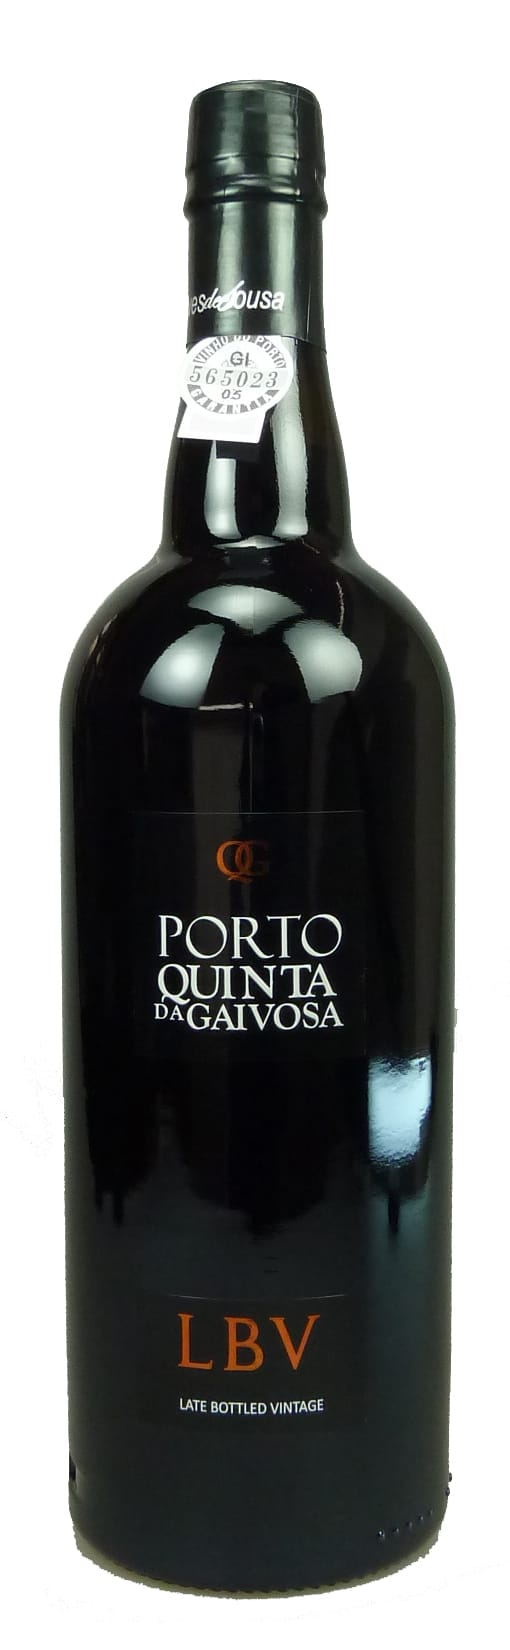 Quinta da Gaivosa Late Bottled Vintage Port 2013